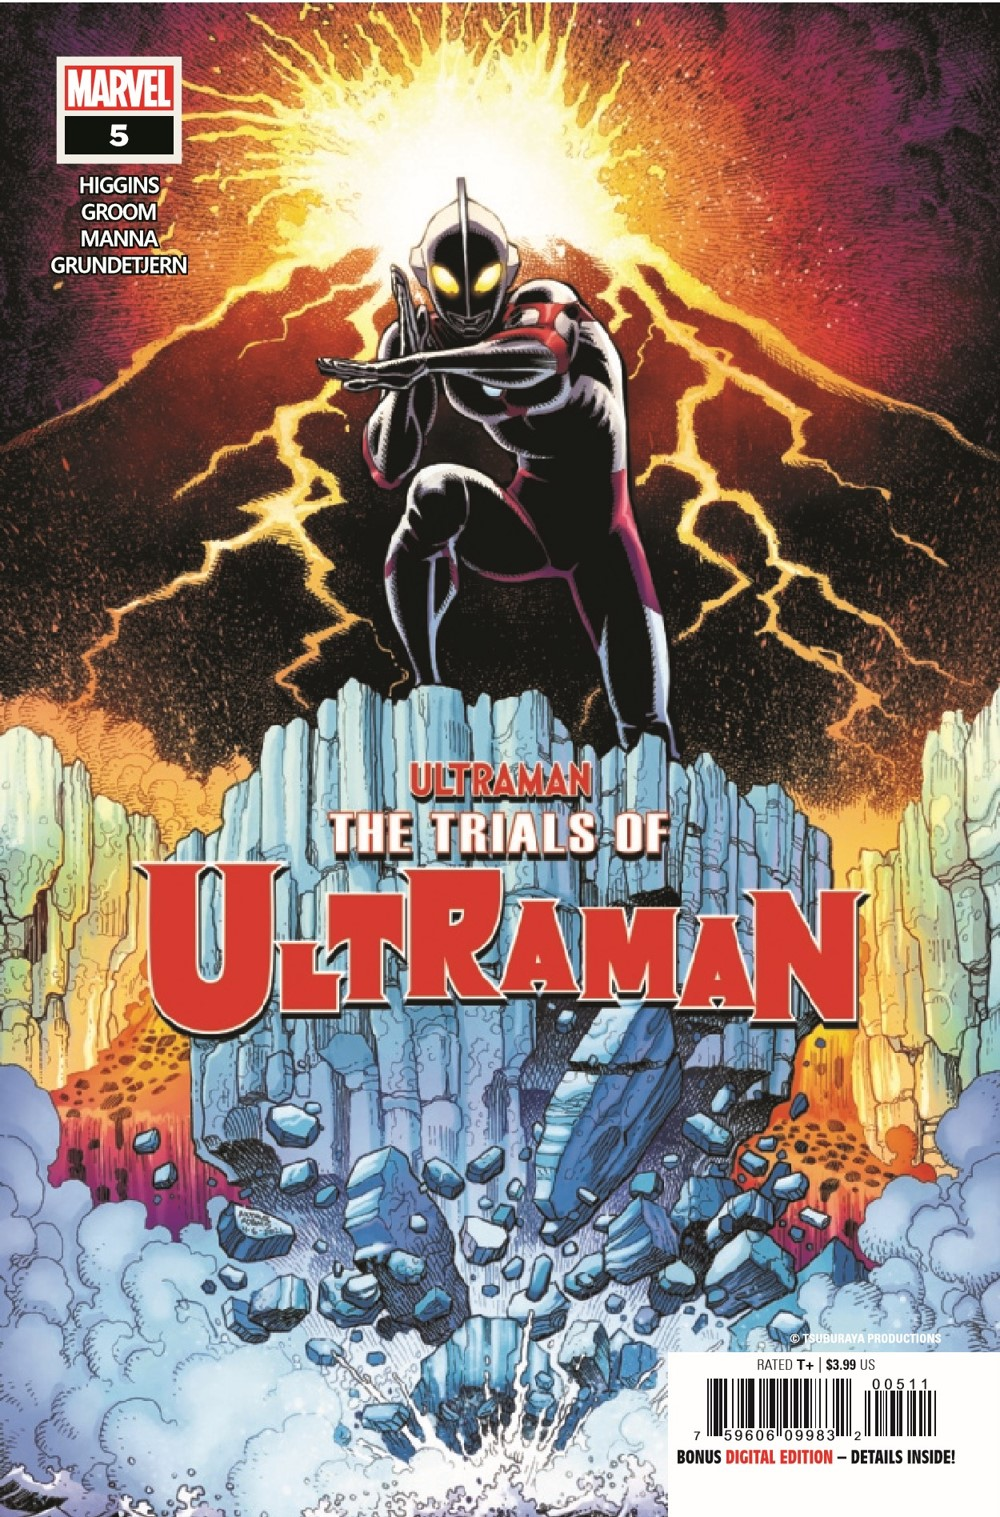 ULTRAMANTRIALS2021005_Preview-1 ComicList Previews: THE TRIALS OF ULTRAMAN #5 (OF 5)